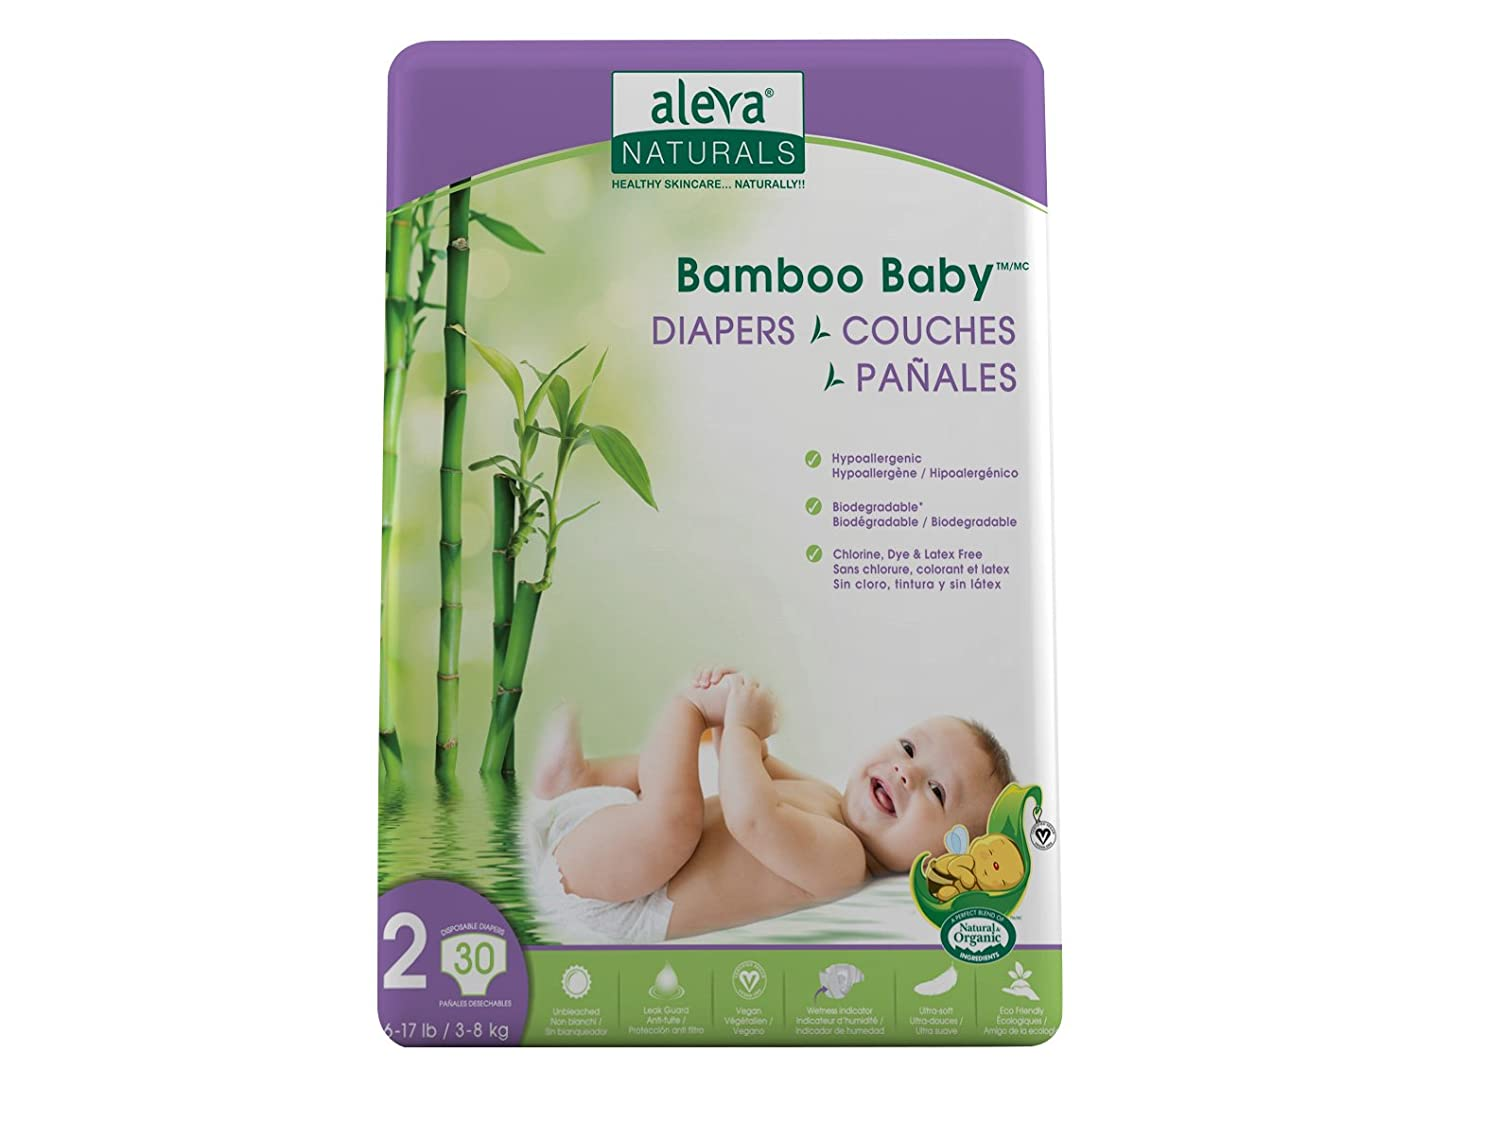 Amazon.com: Aleva Naturals Bamboo Baby Diapers, Size 2, (6-17 lbs / 3-8 kgs) 30 Count: Health & Personal Care